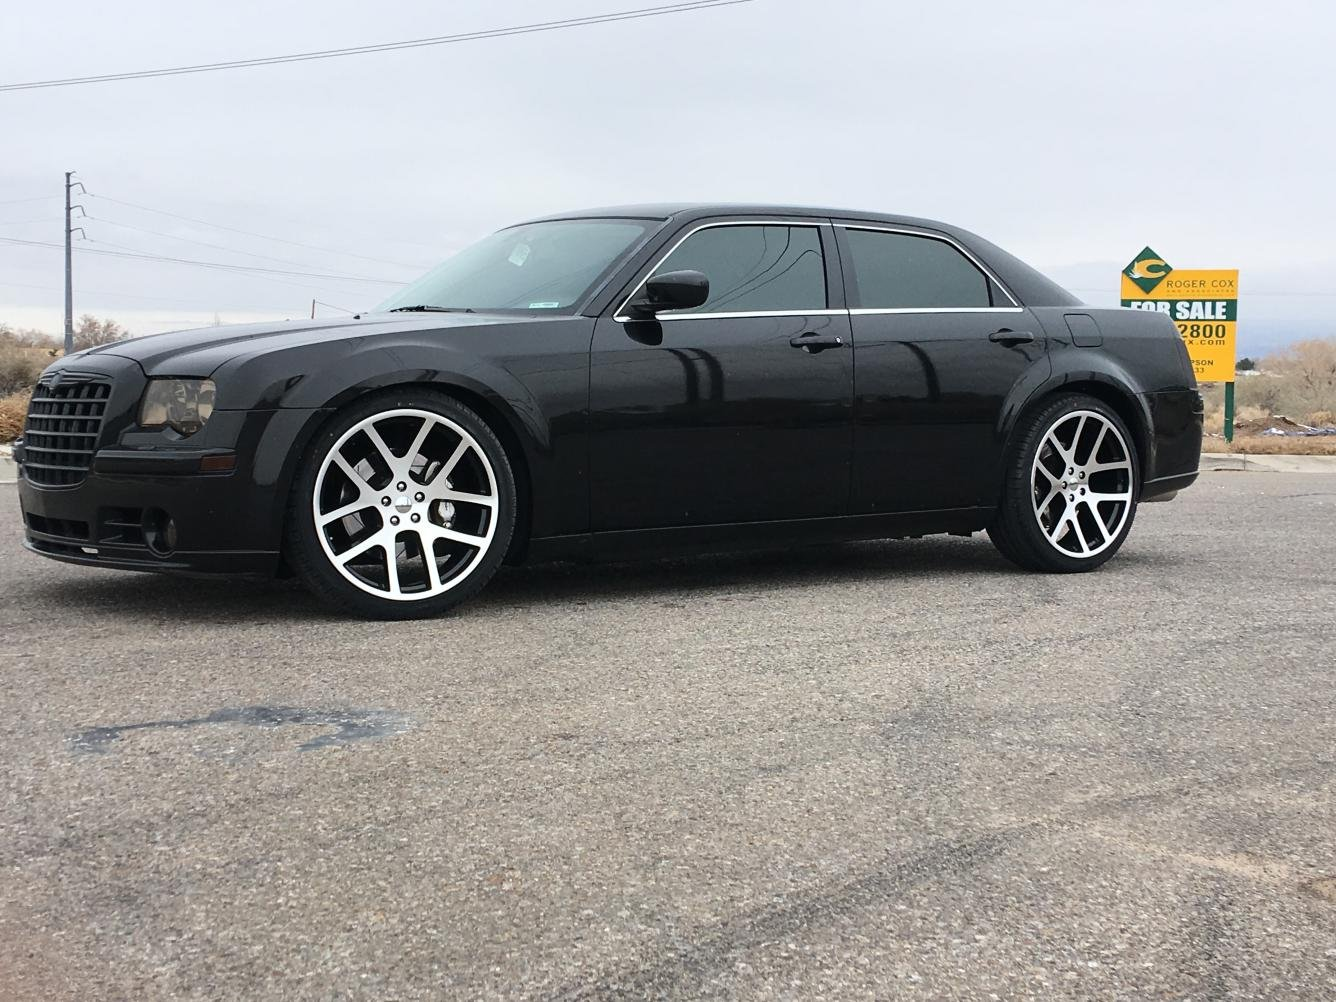 2006 300 SRT8 new shoes  Chrysler 300C Forum 300C  SRT8 Forums